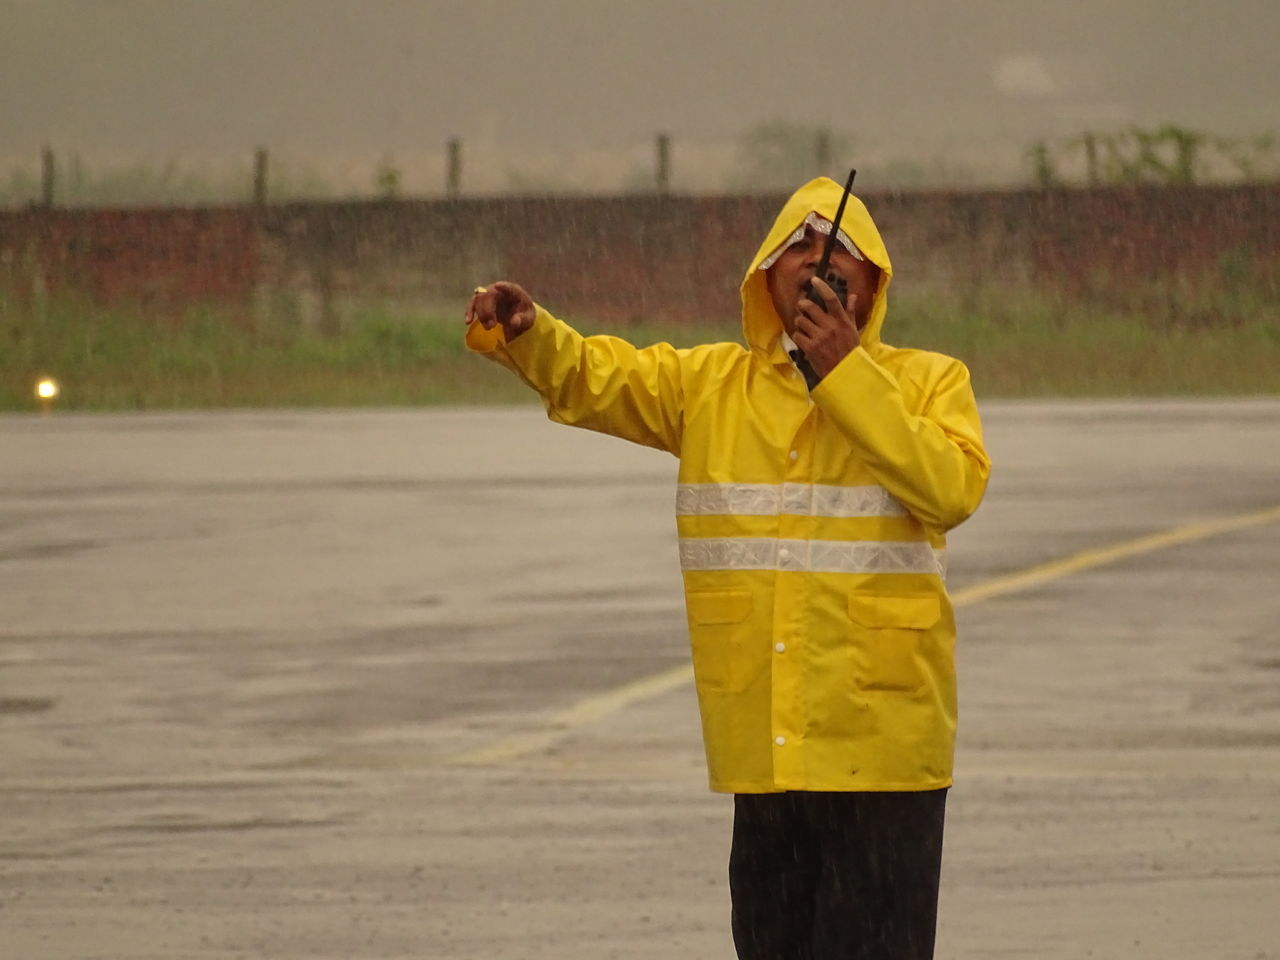 The Commander Take Off Work Working Airport Job People Rainy The Commander Walky Talky